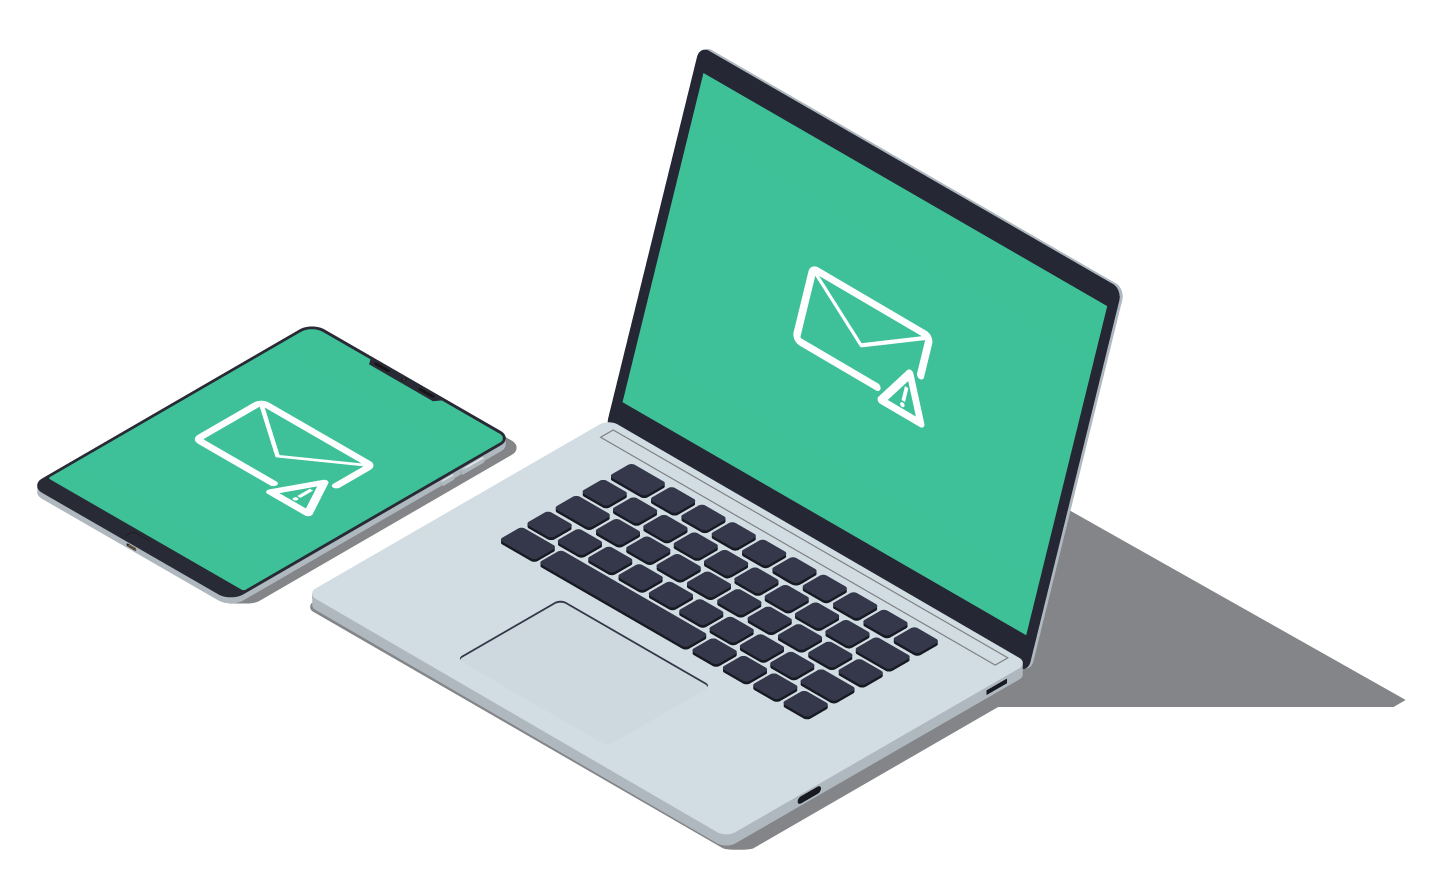 Isometric-laptop-and-tablet,-green-envelope